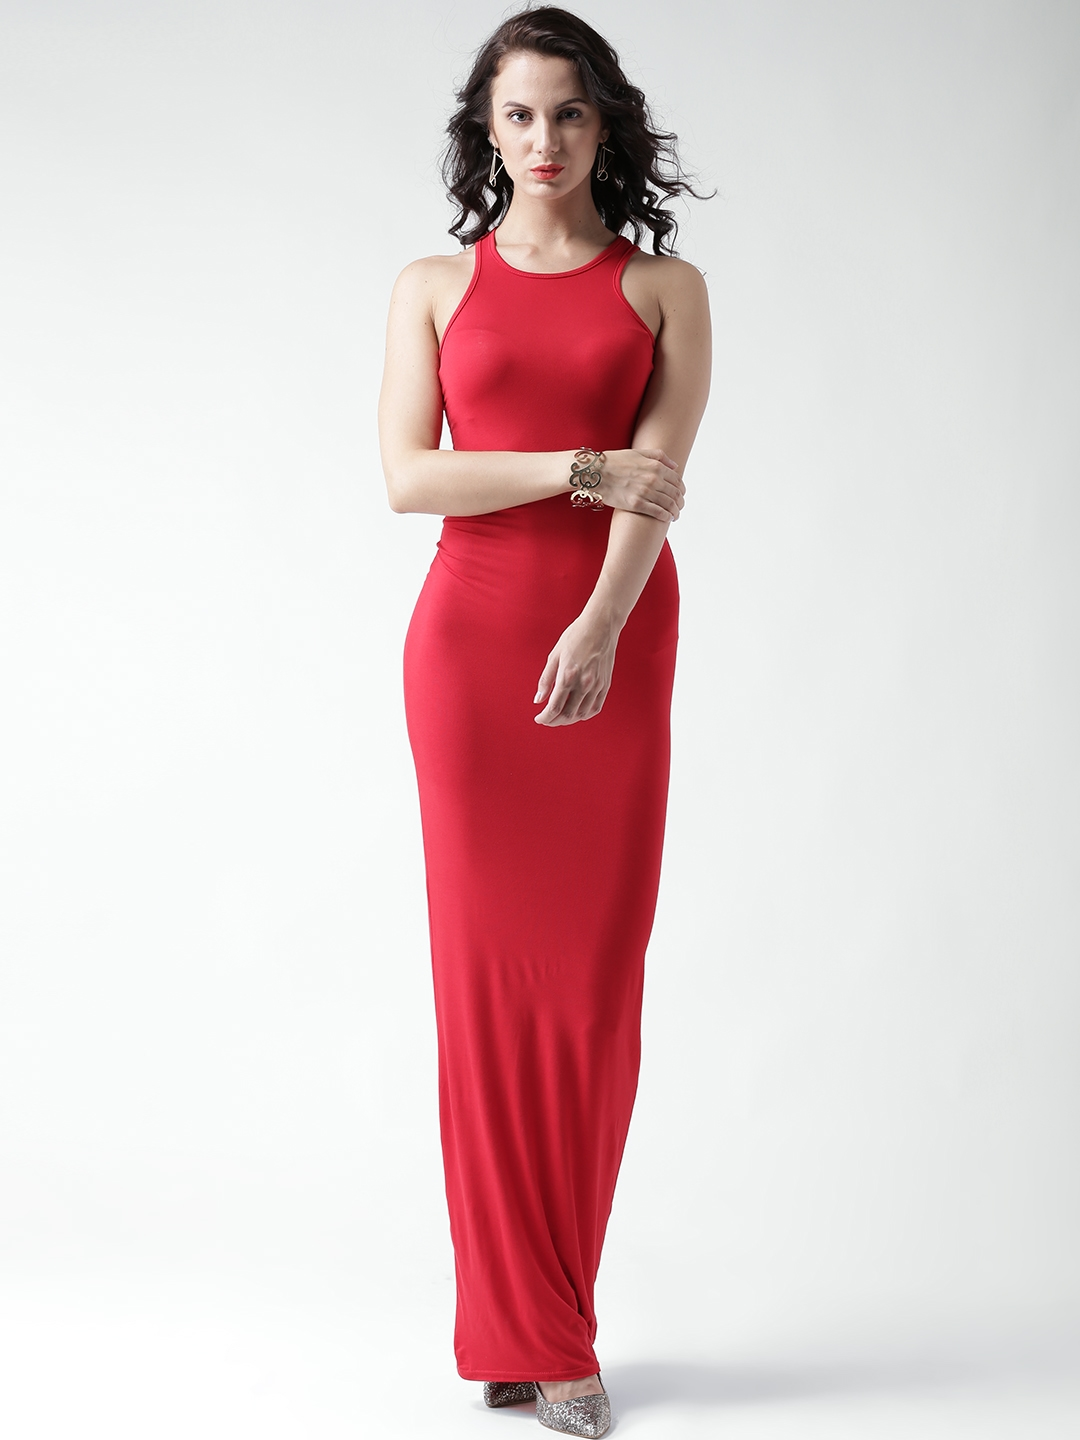 244946db4c90a Buy Boohoo Red Maxi Dress - Dresses for Women 1415211 | Myntra